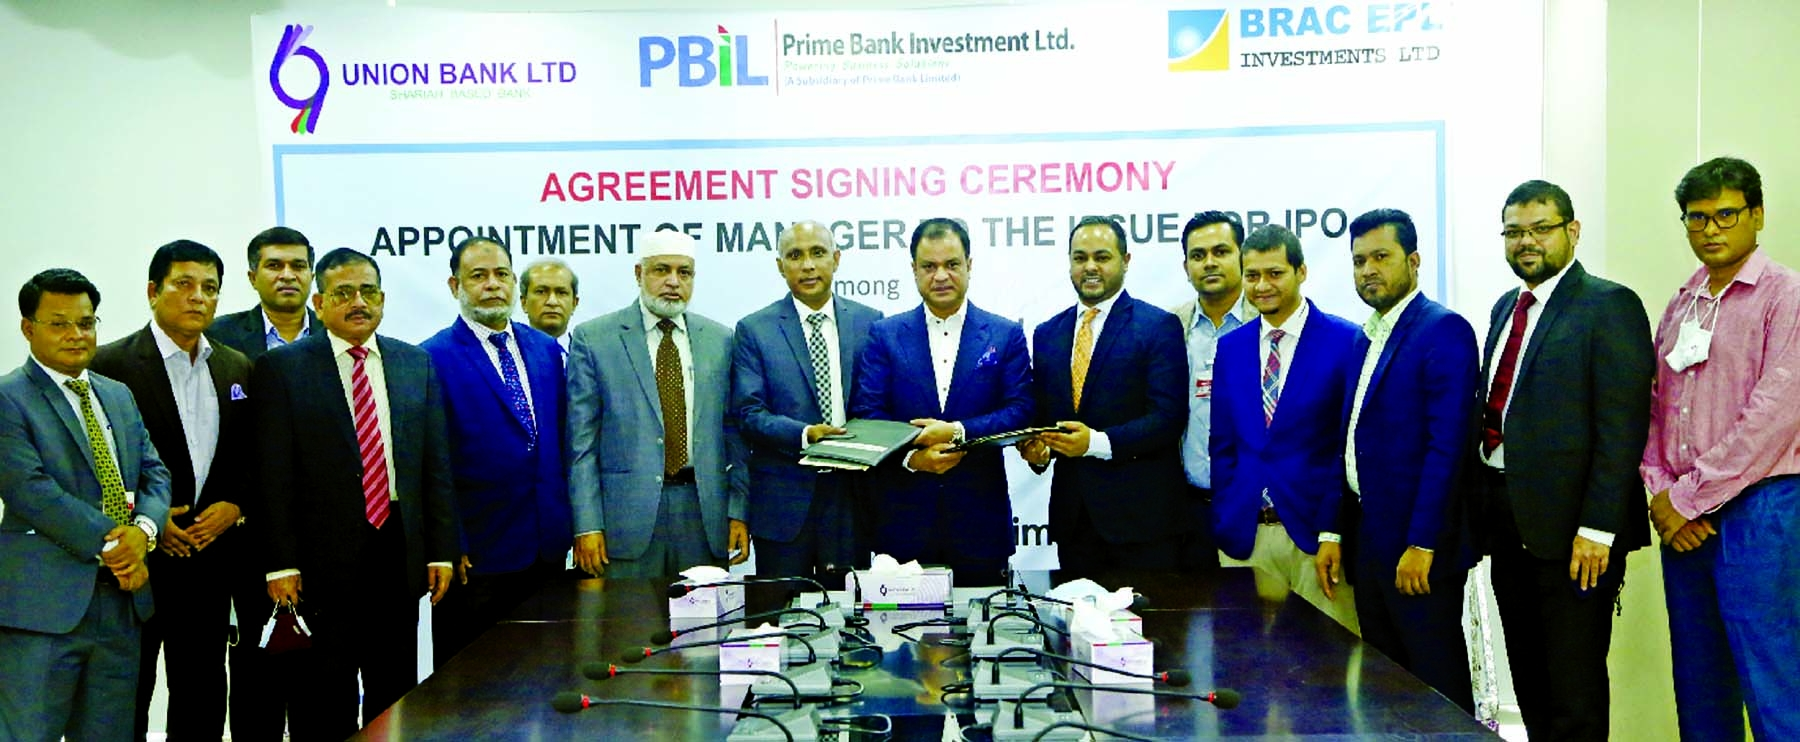 ABM Mokammel Hoque Chowdhury, Managing Director of Union Bank Limited and Khandoker Raihan Ali, Chief Operating Officer of Prime Bank Investment Limited and Syed Rashed Hussain, CEO of BRAC EPL Investments, exchanging document after signing an agreement to work as Joint Issue Managers to provide Issue Management services for the forthcoming IPO of the company under Fixed Pricing Method. High officials from respective organizations were present.